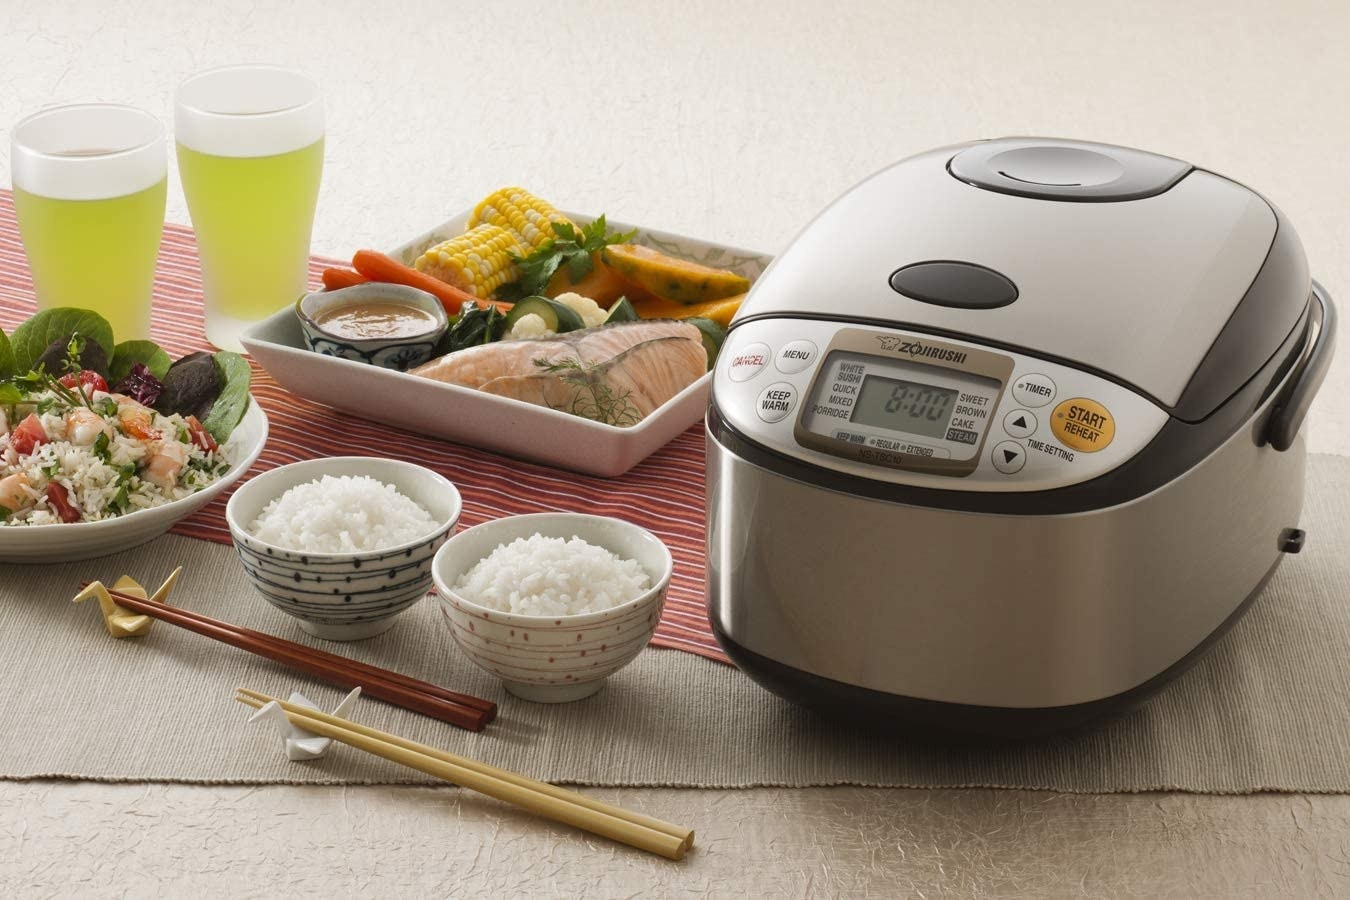 the rice cooker next to two bowls of rice and vegetables